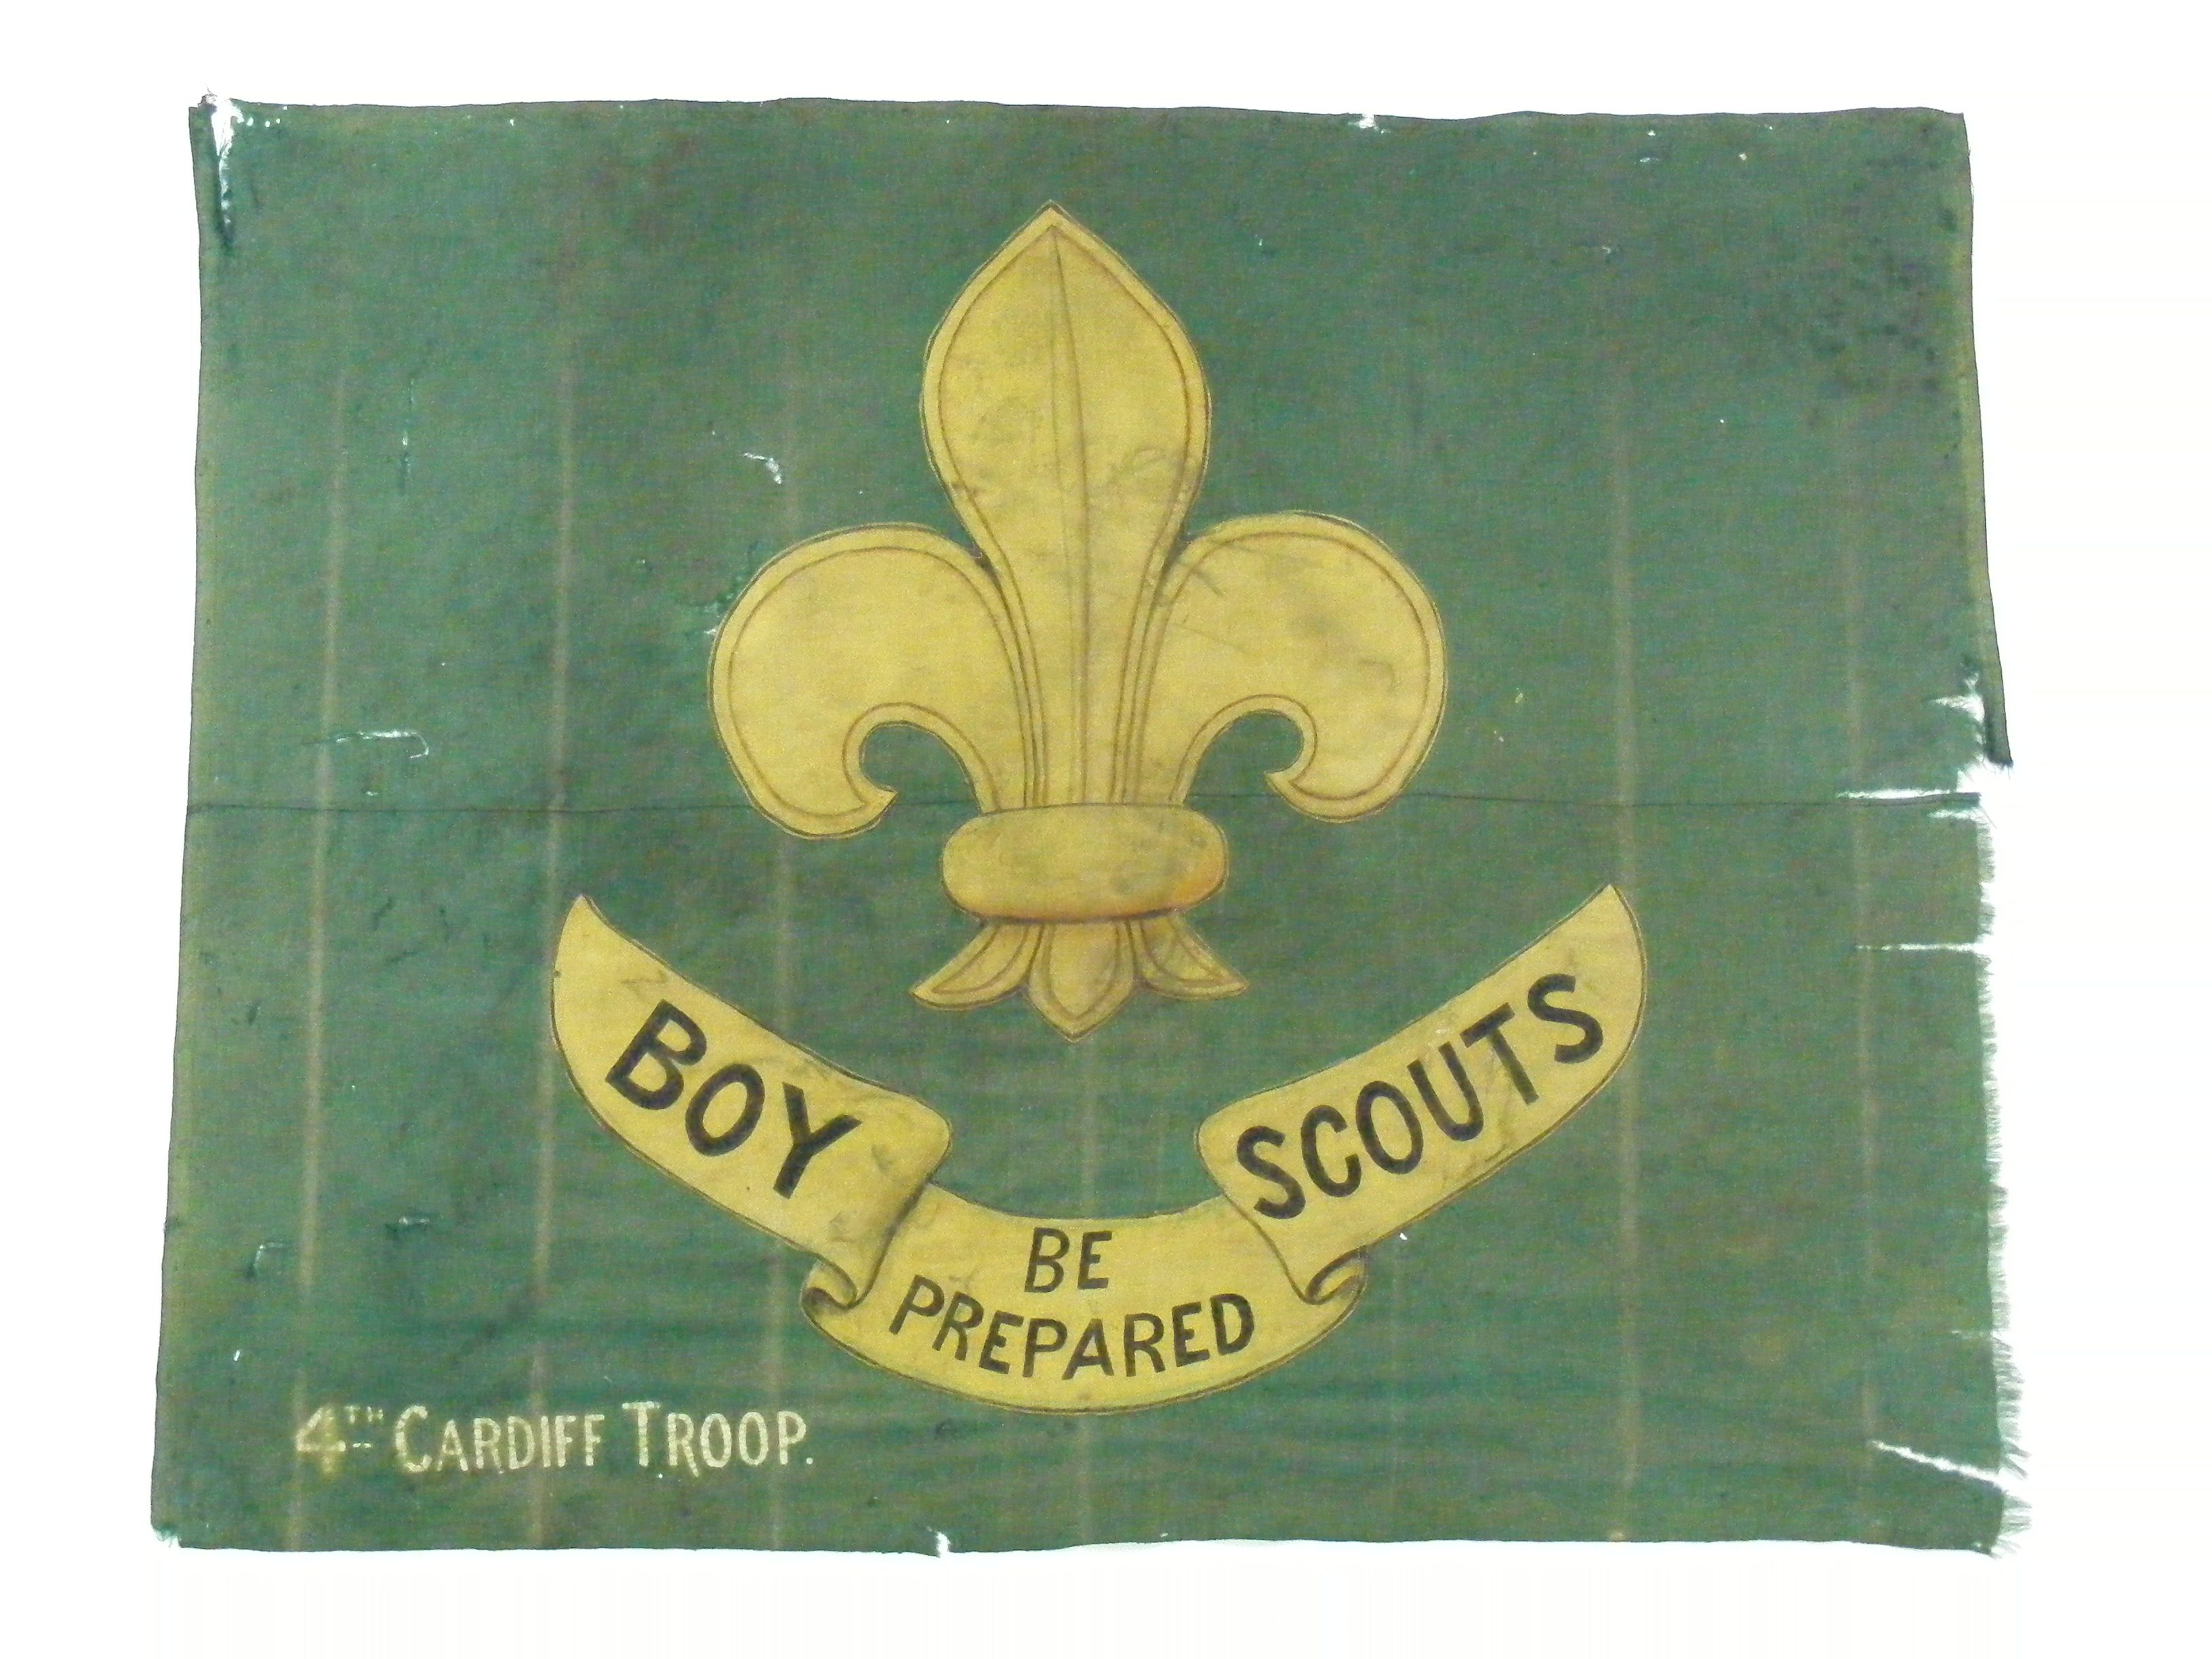 The flag of the 4th Cardiff Scout Troop